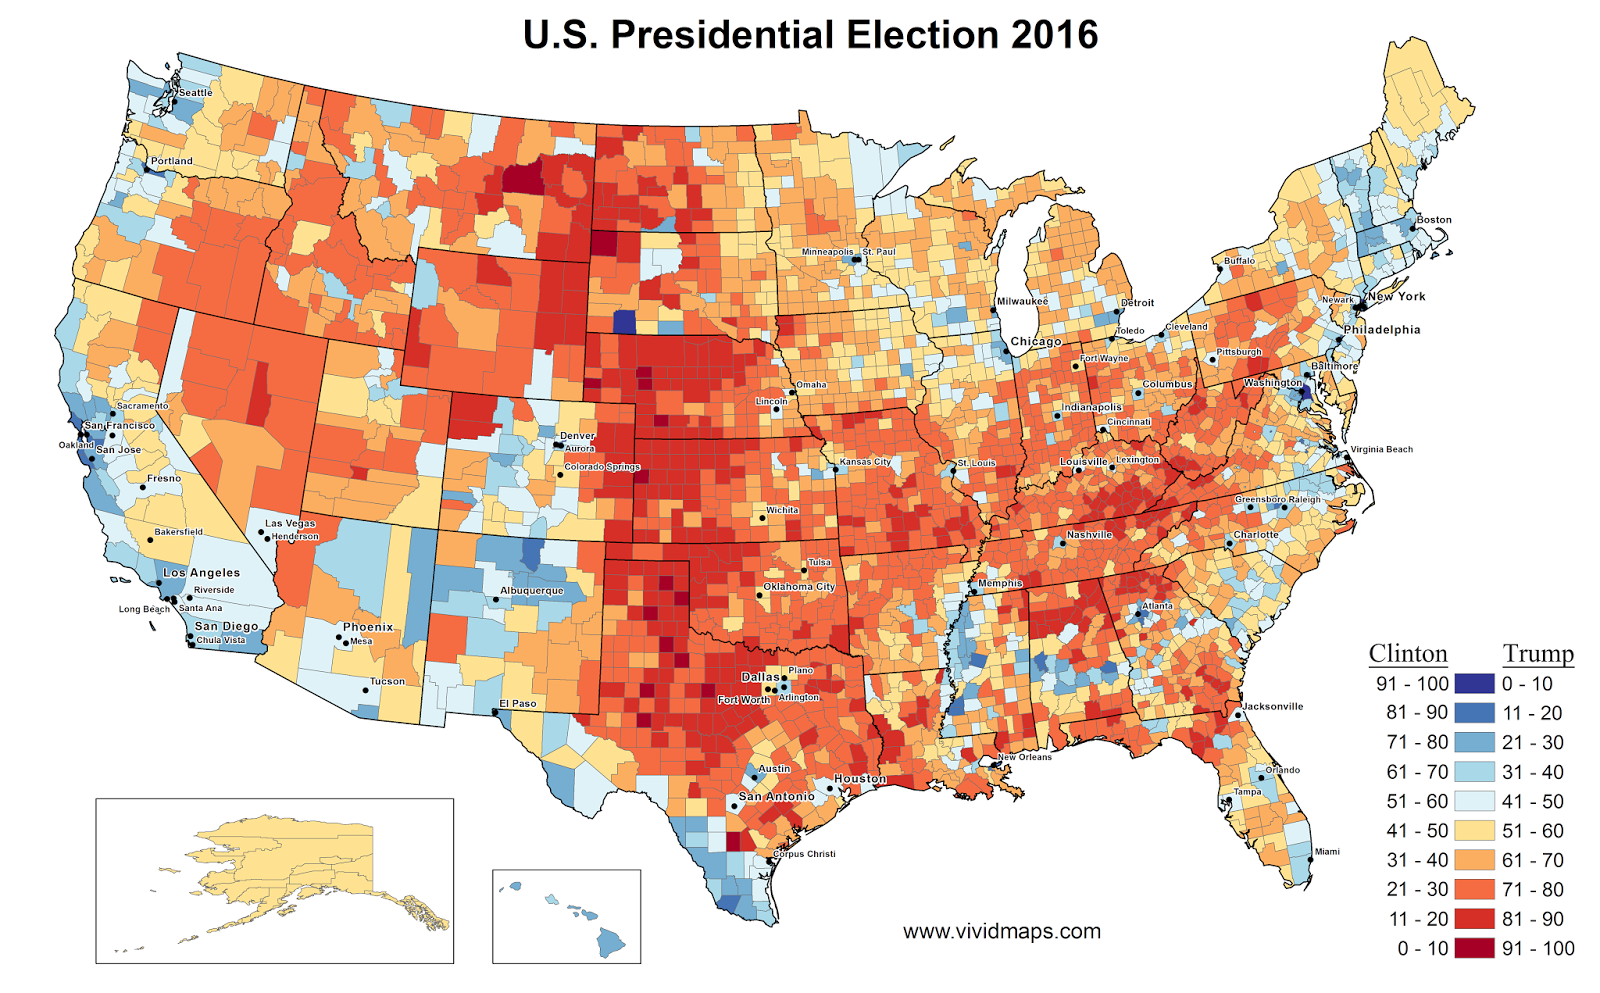 U.S. presidential election results by county